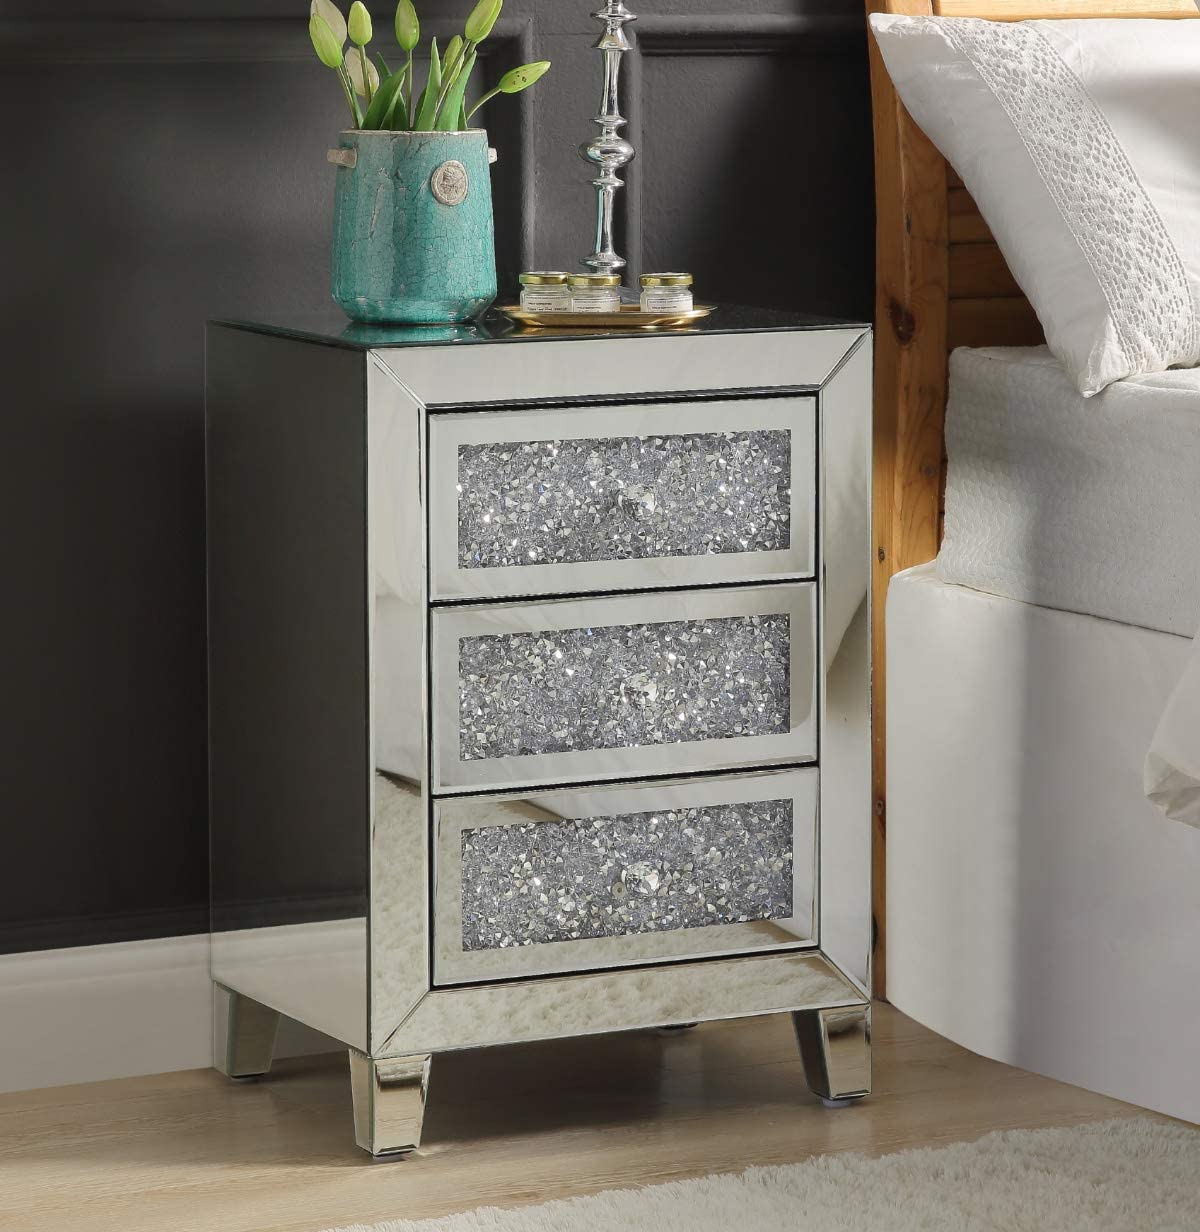 Mirrored Nightstand with Crystal Diamond Inlay, Silver Mini Cabinet with Three Drawers, End Table for Bedroom Living Room from Mireo Furniture